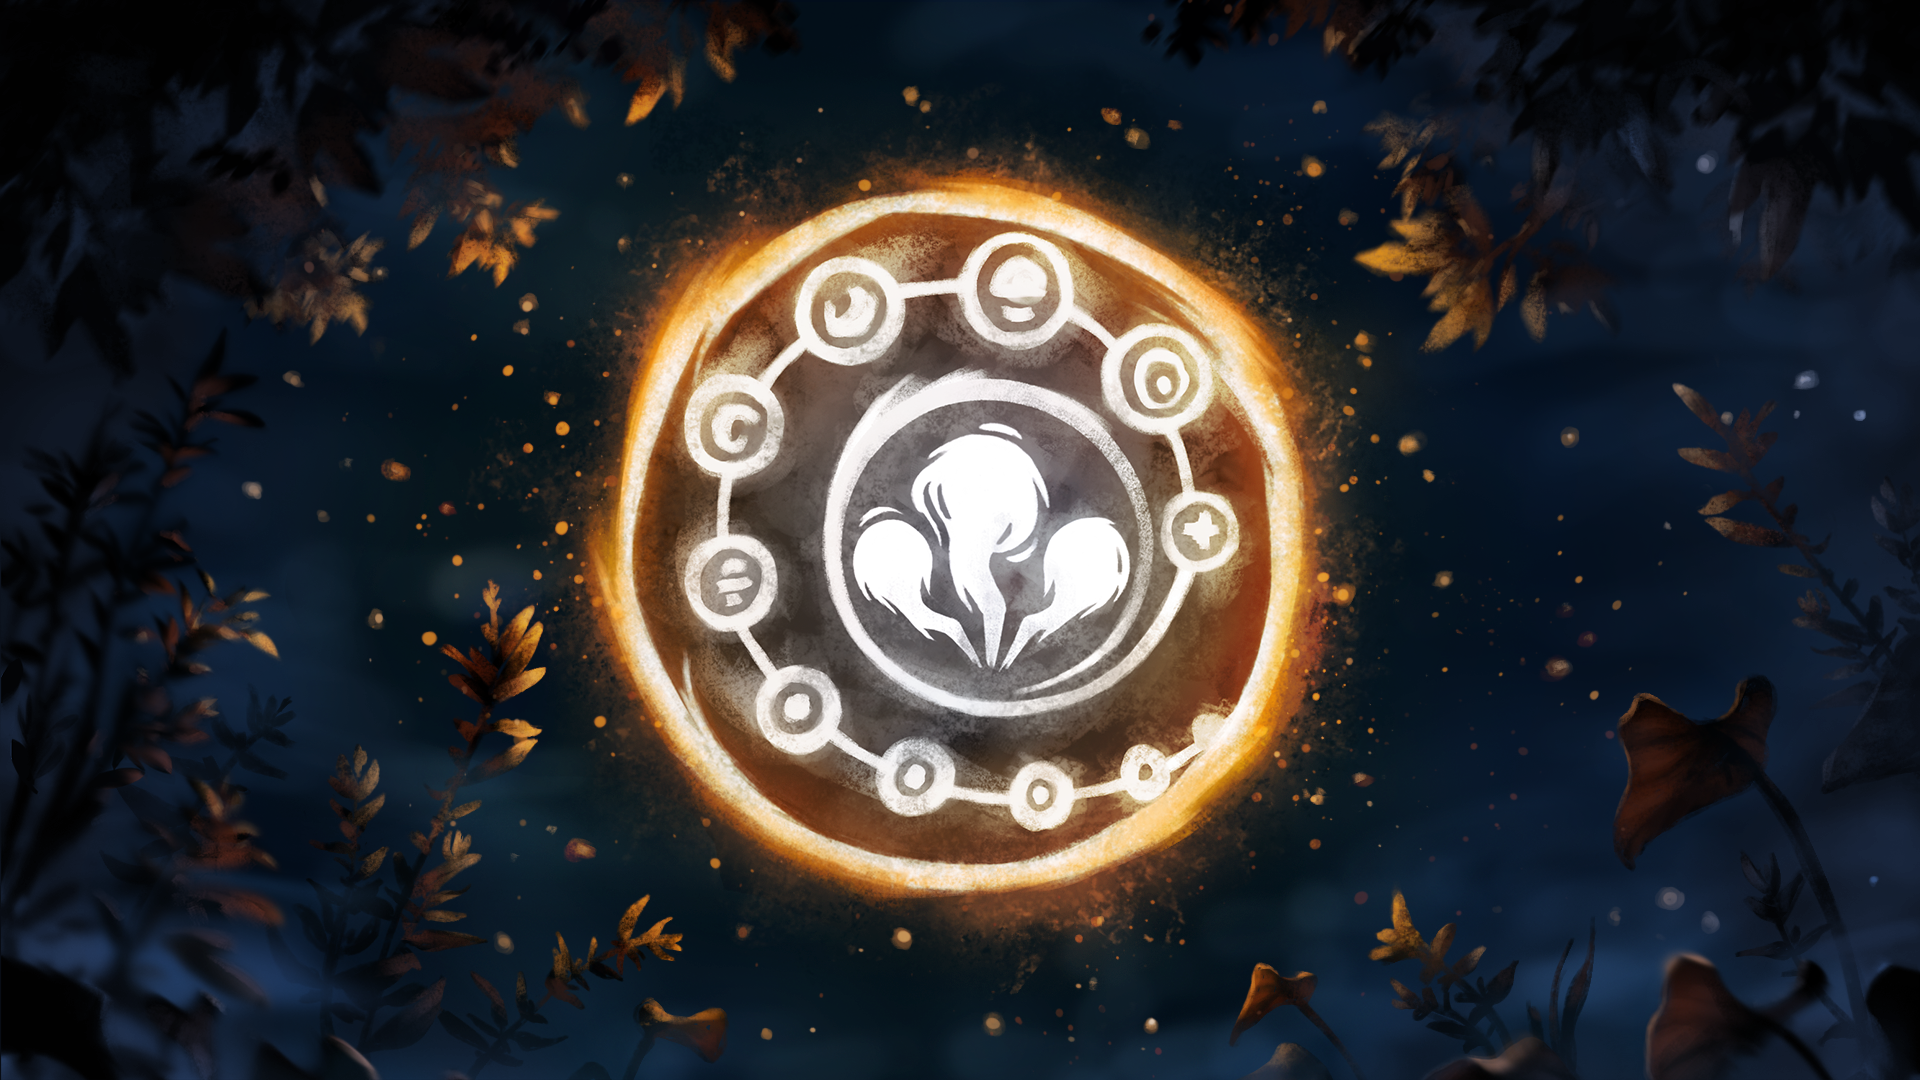 Soul Master achievement for Ori and the Blind Forest on Nintendo Switch